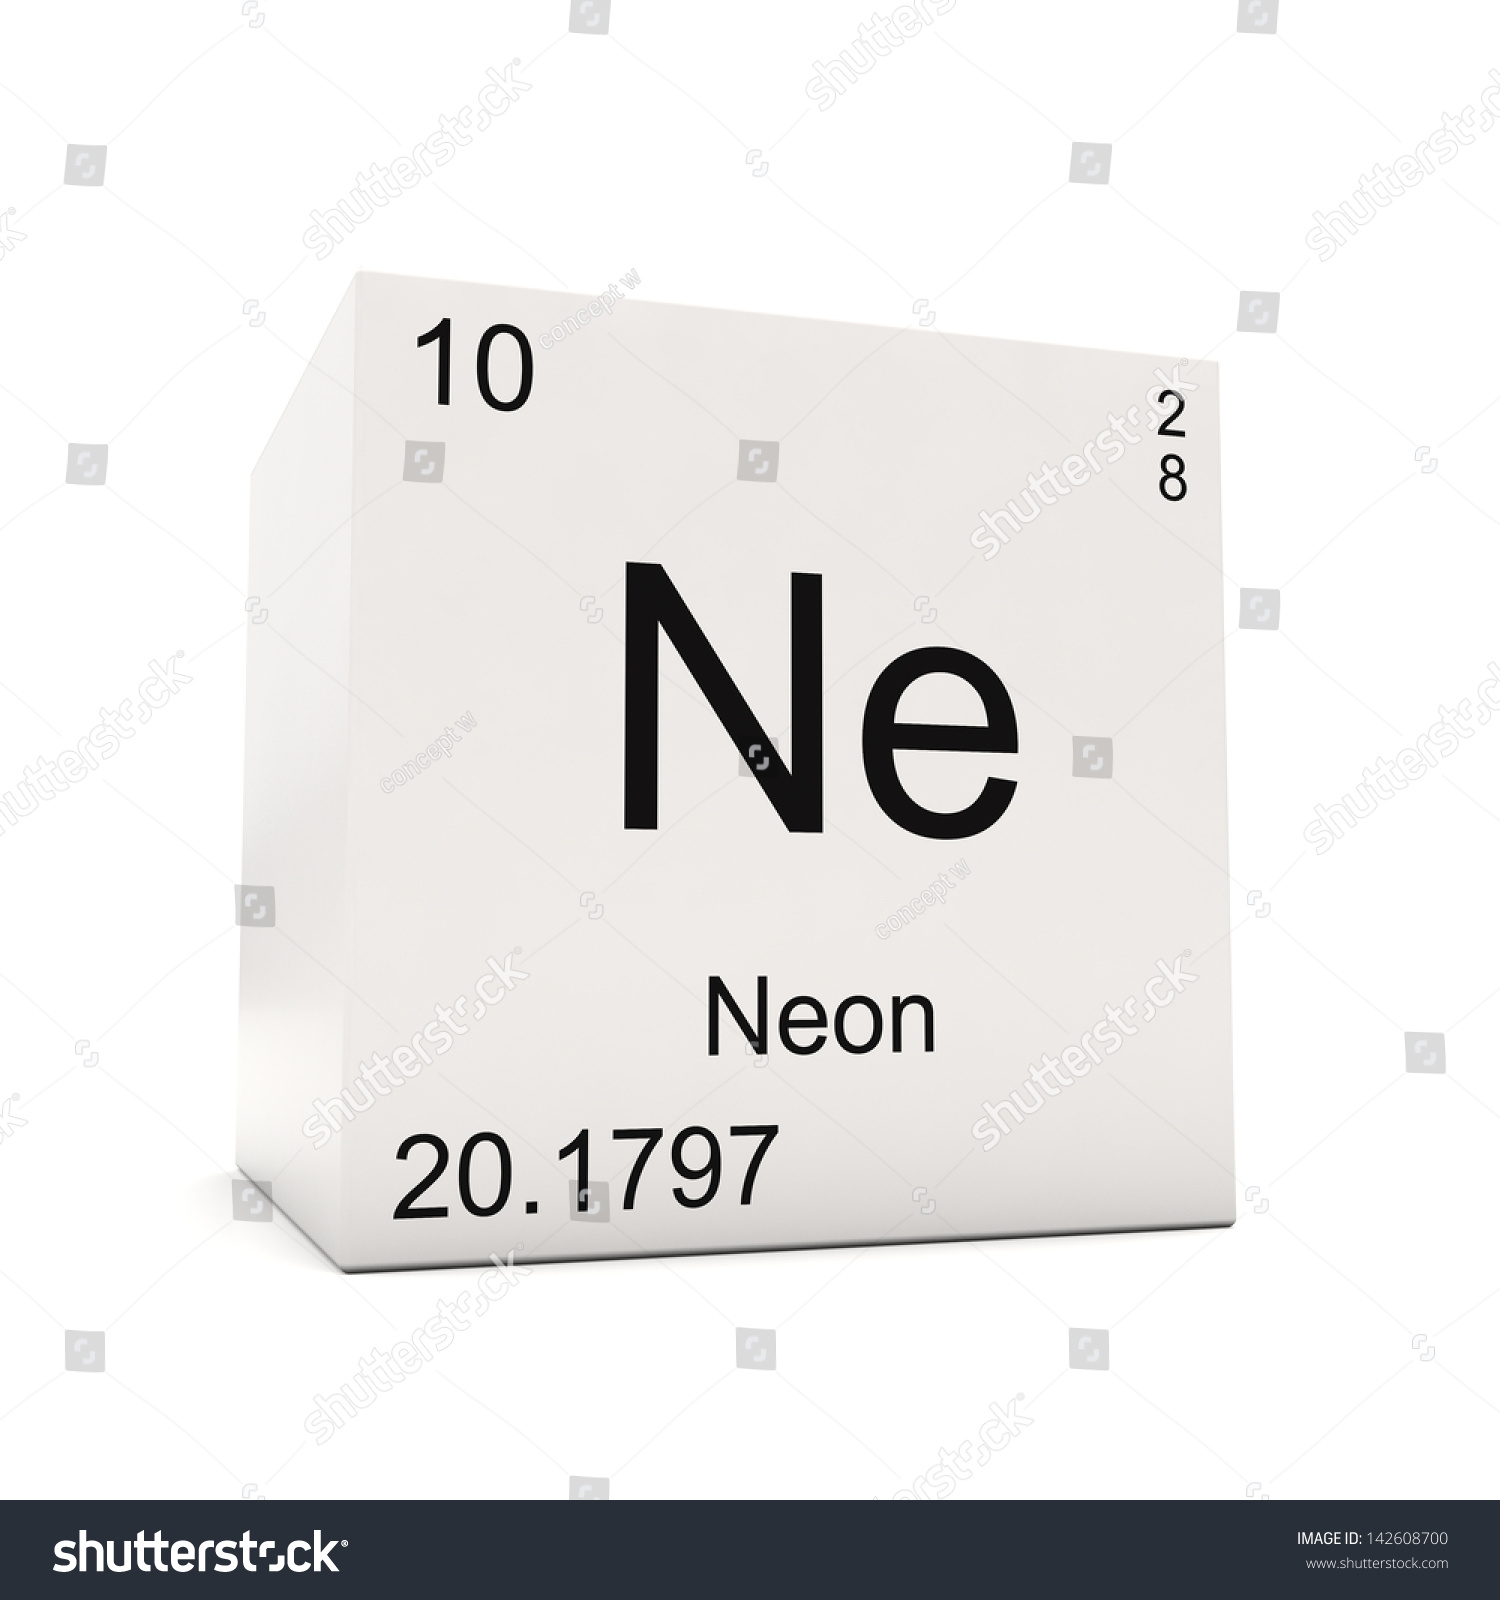 Cube neon element periodic table isolated stock illustration cube of neon element of the periodic table isolated on white background gamestrikefo Gallery